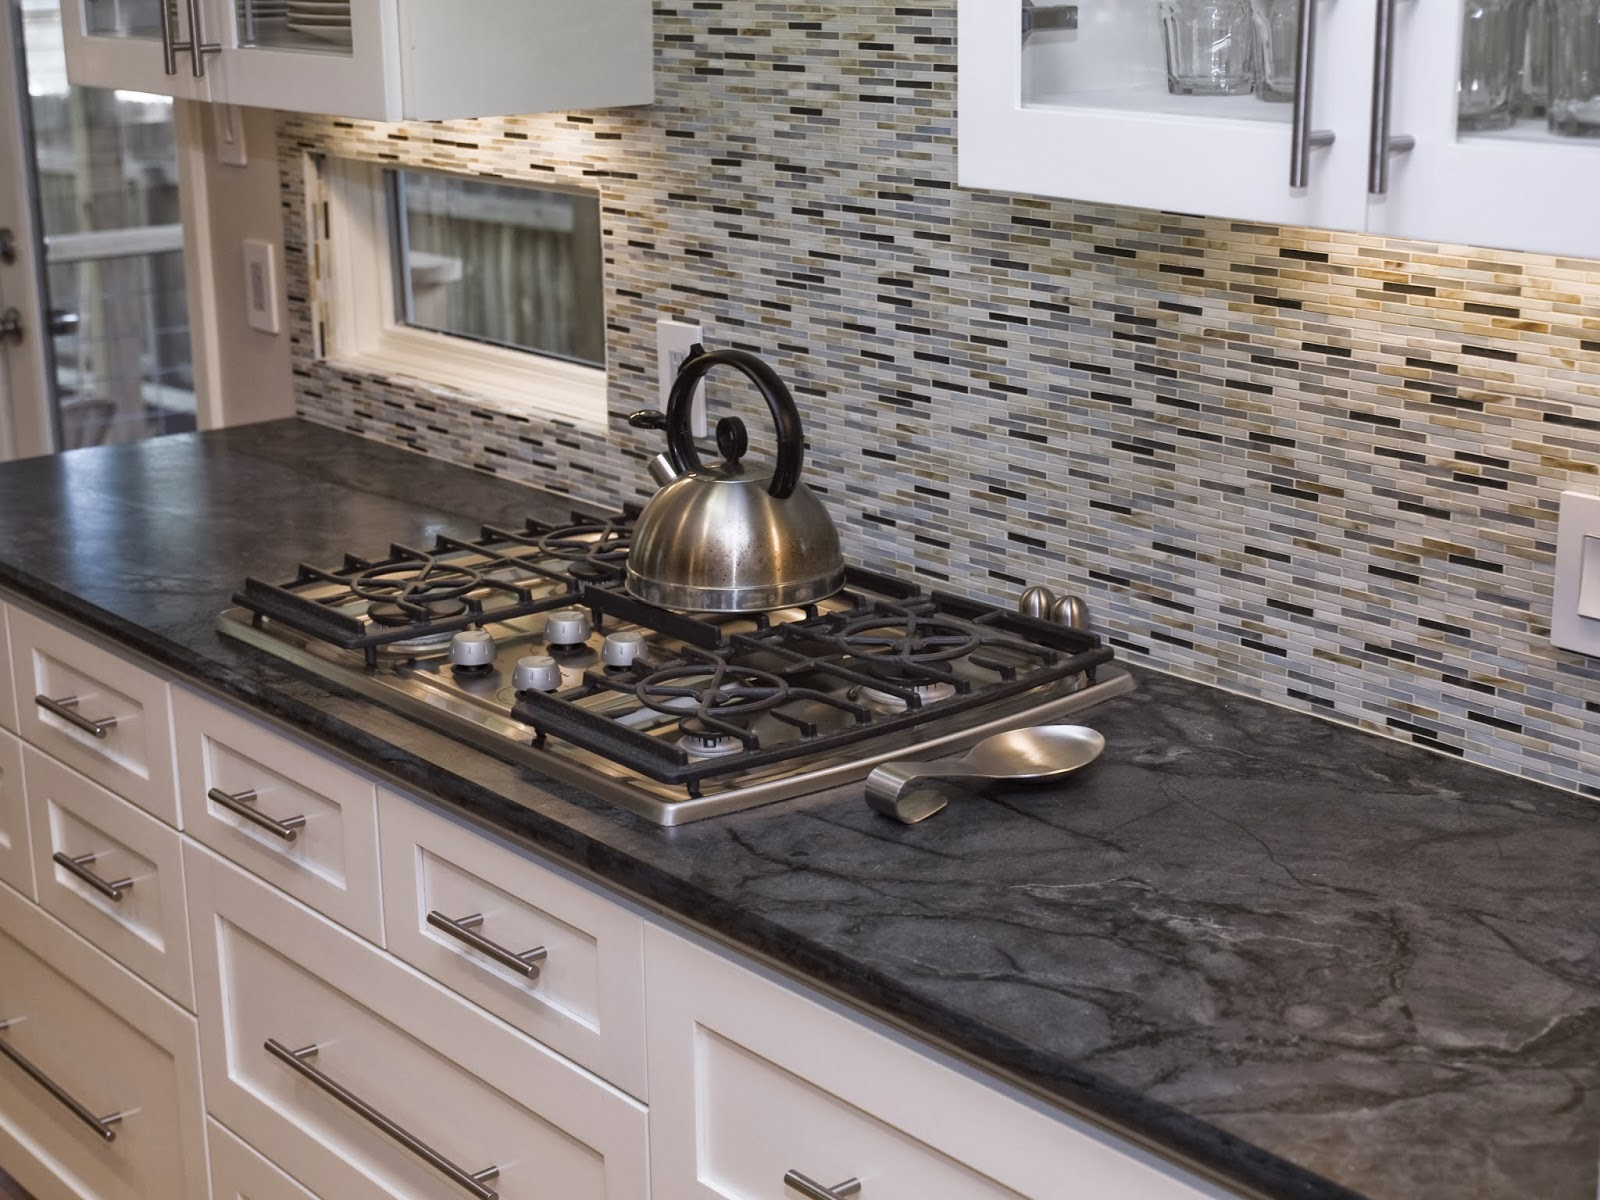 smart black and white kitchen backsplash ideas SMVSIJI